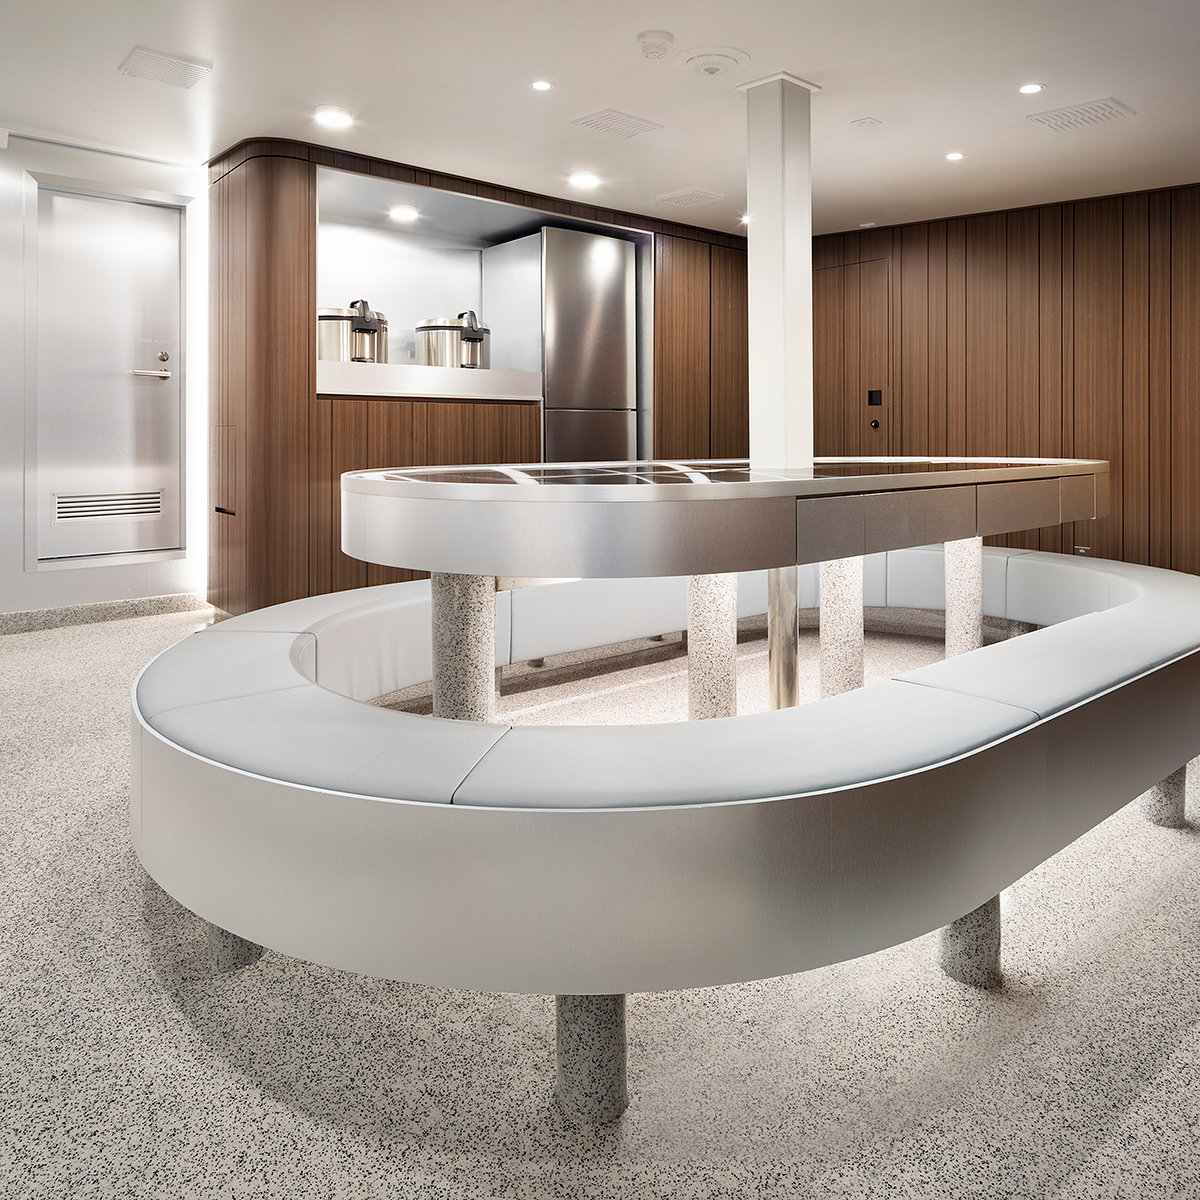 nendo Completes Interior and Exterior Design for Tuna Longliner